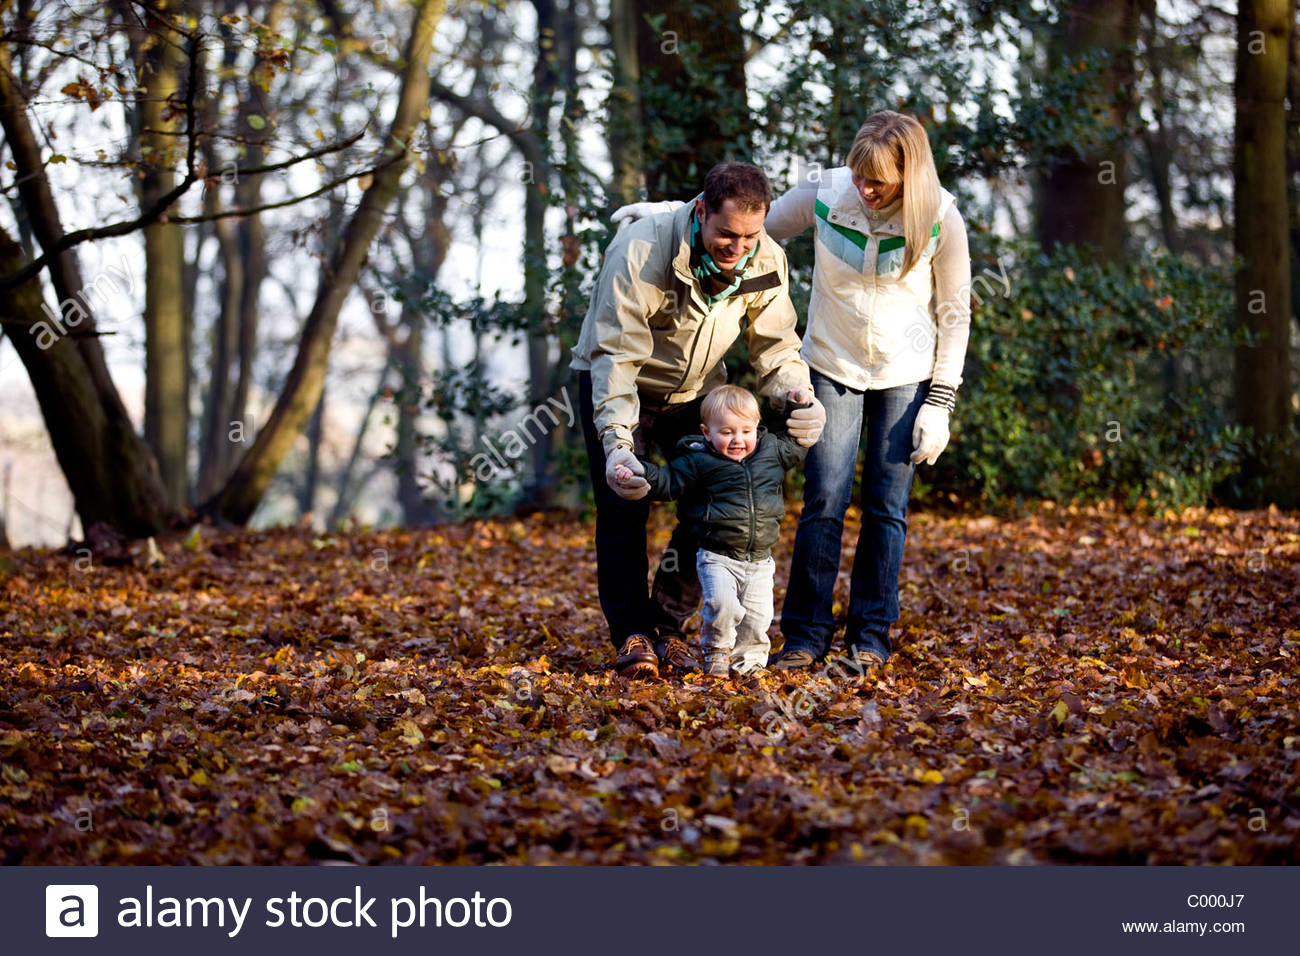 A young couple helping their son walk in the park - Stock Image